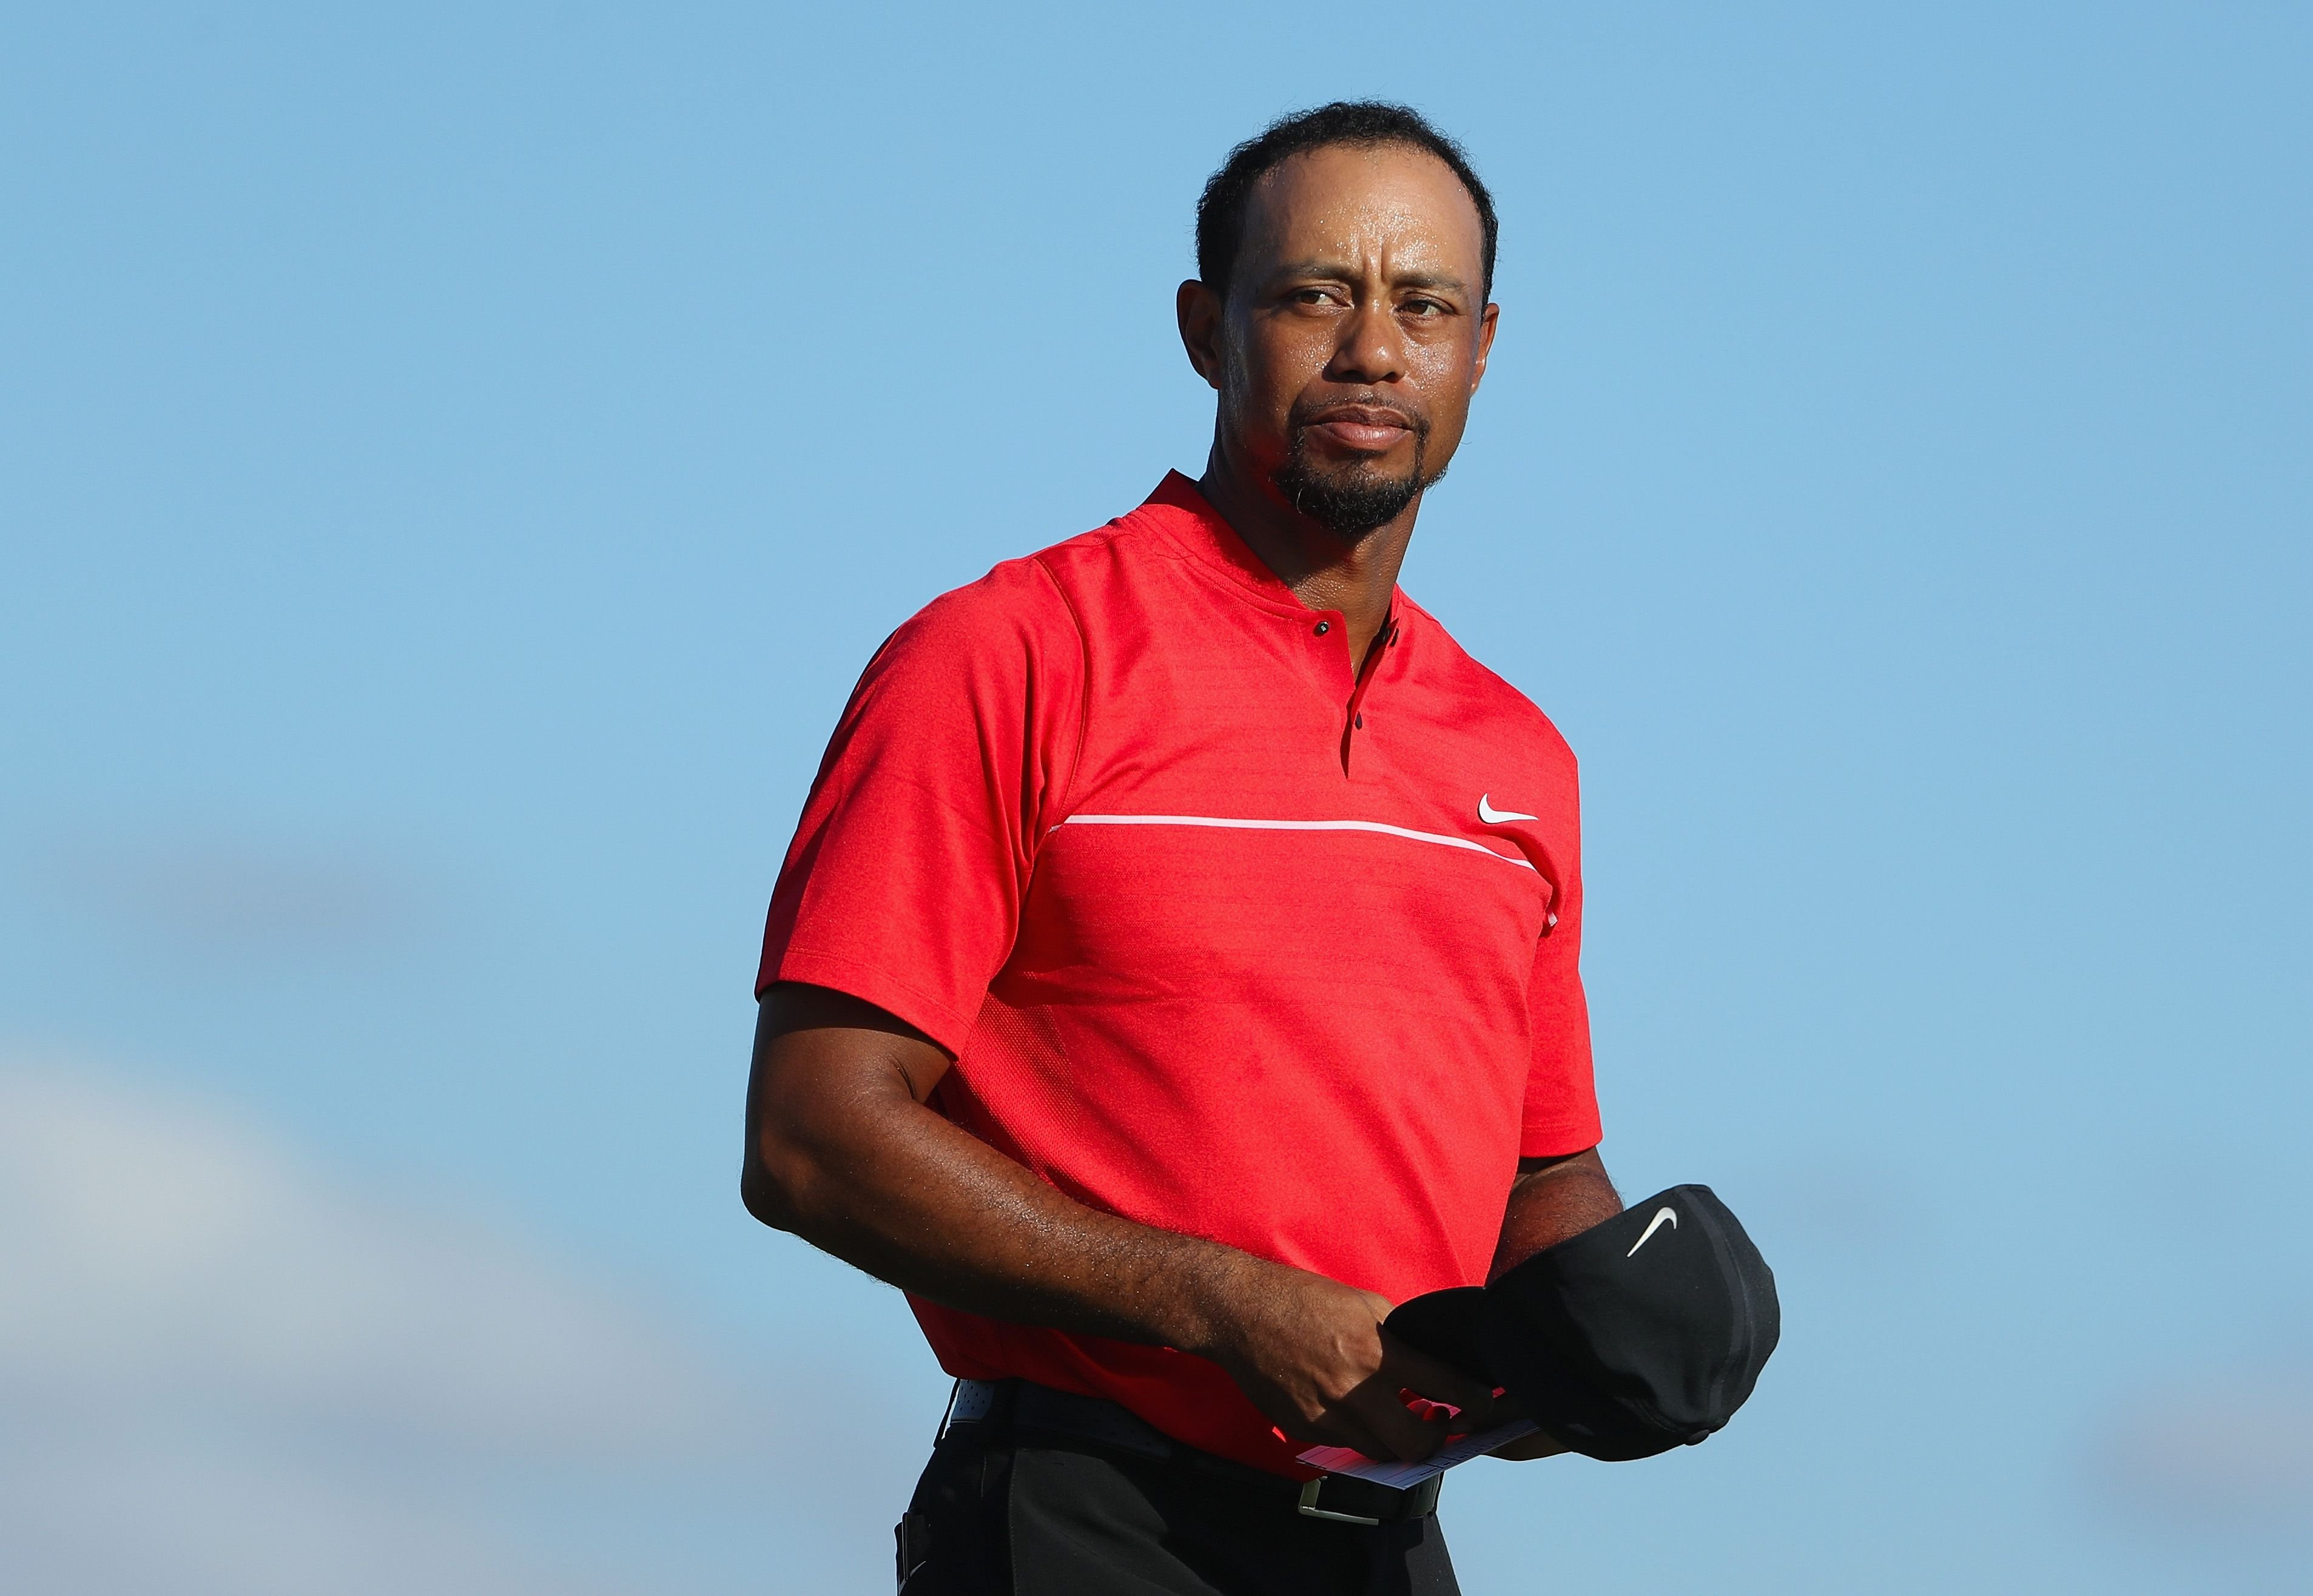 Tiger Woods during the 18th hole during the final round of the Hero World Challenge on December 4, 2016, in Nassau, Bahamas. | Source: Getty Images